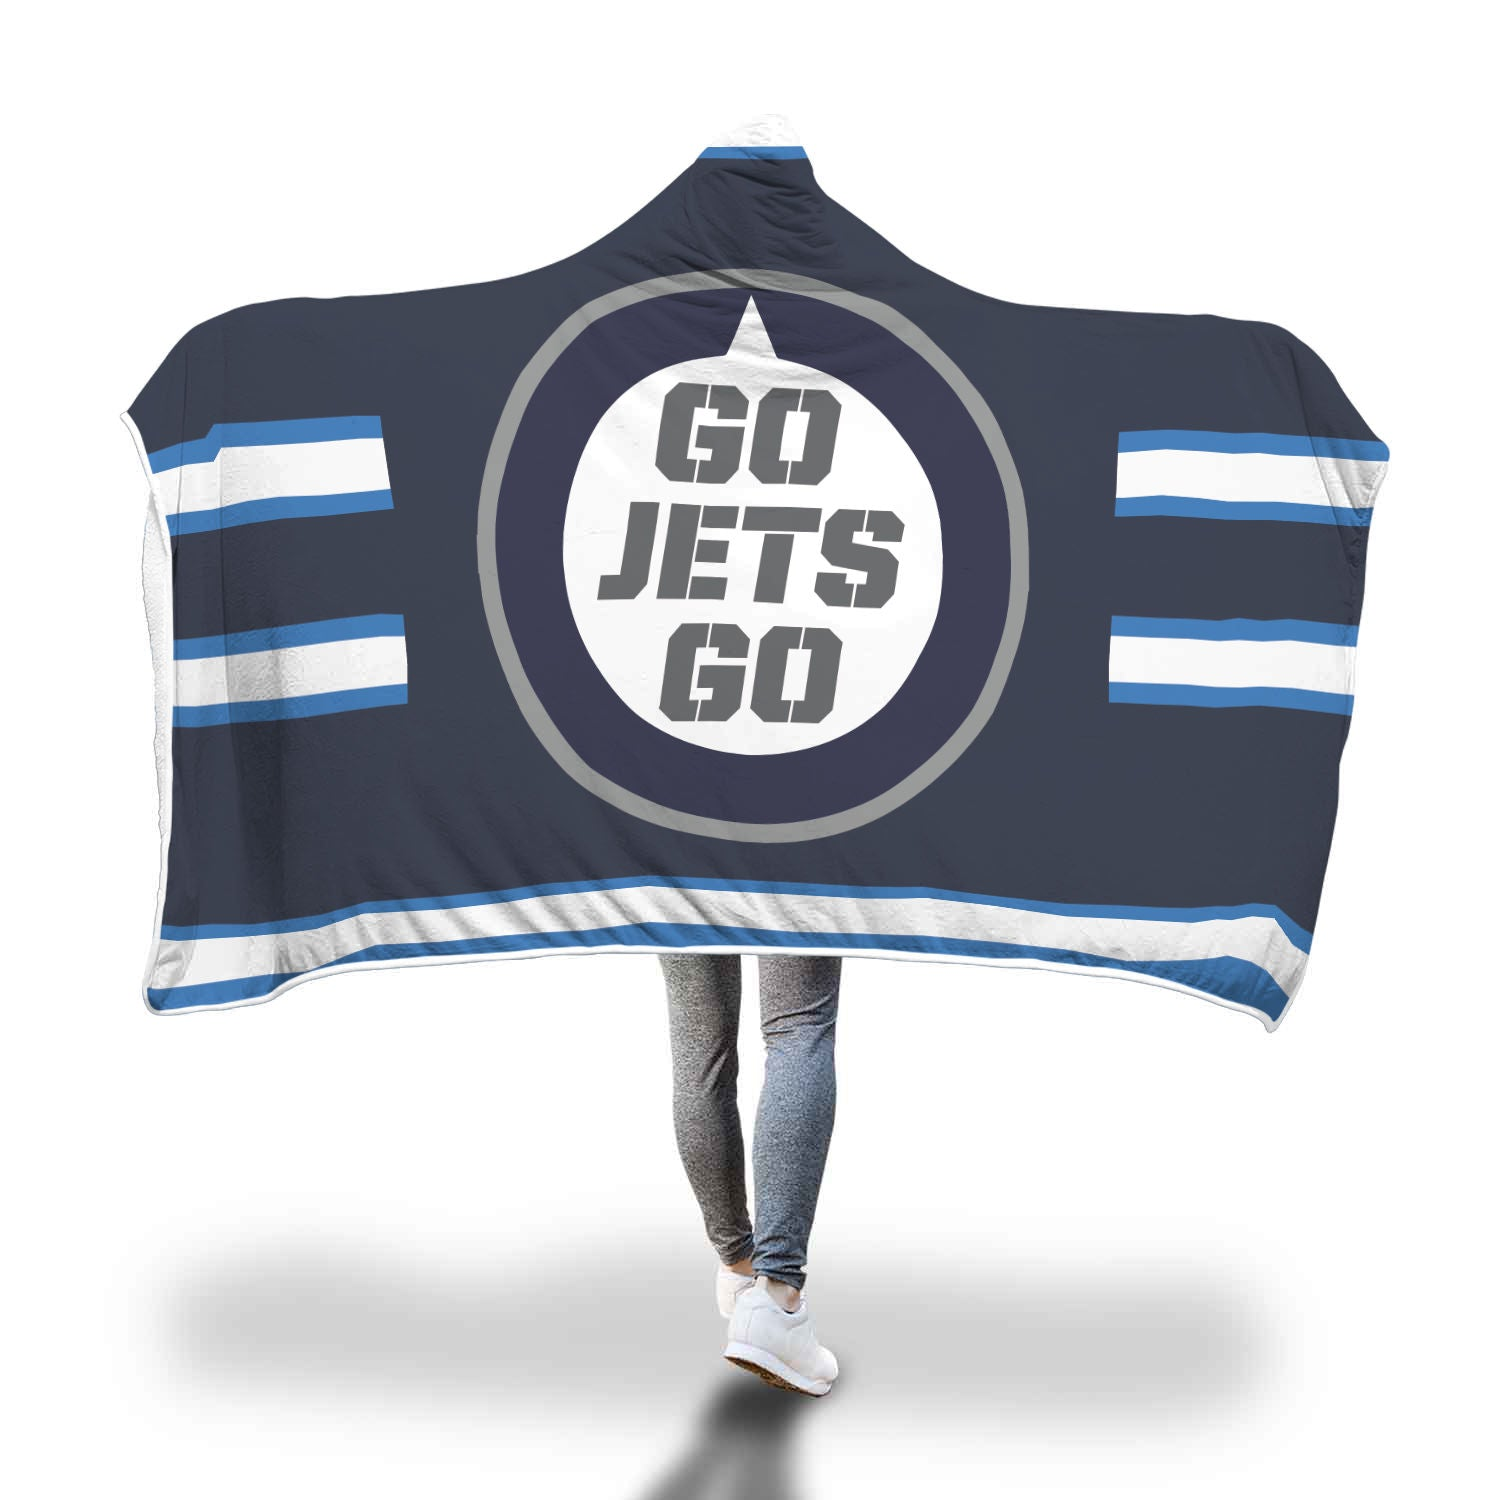 Custom Designed Hooded Blanket For WJ Fans - Blindly Shop